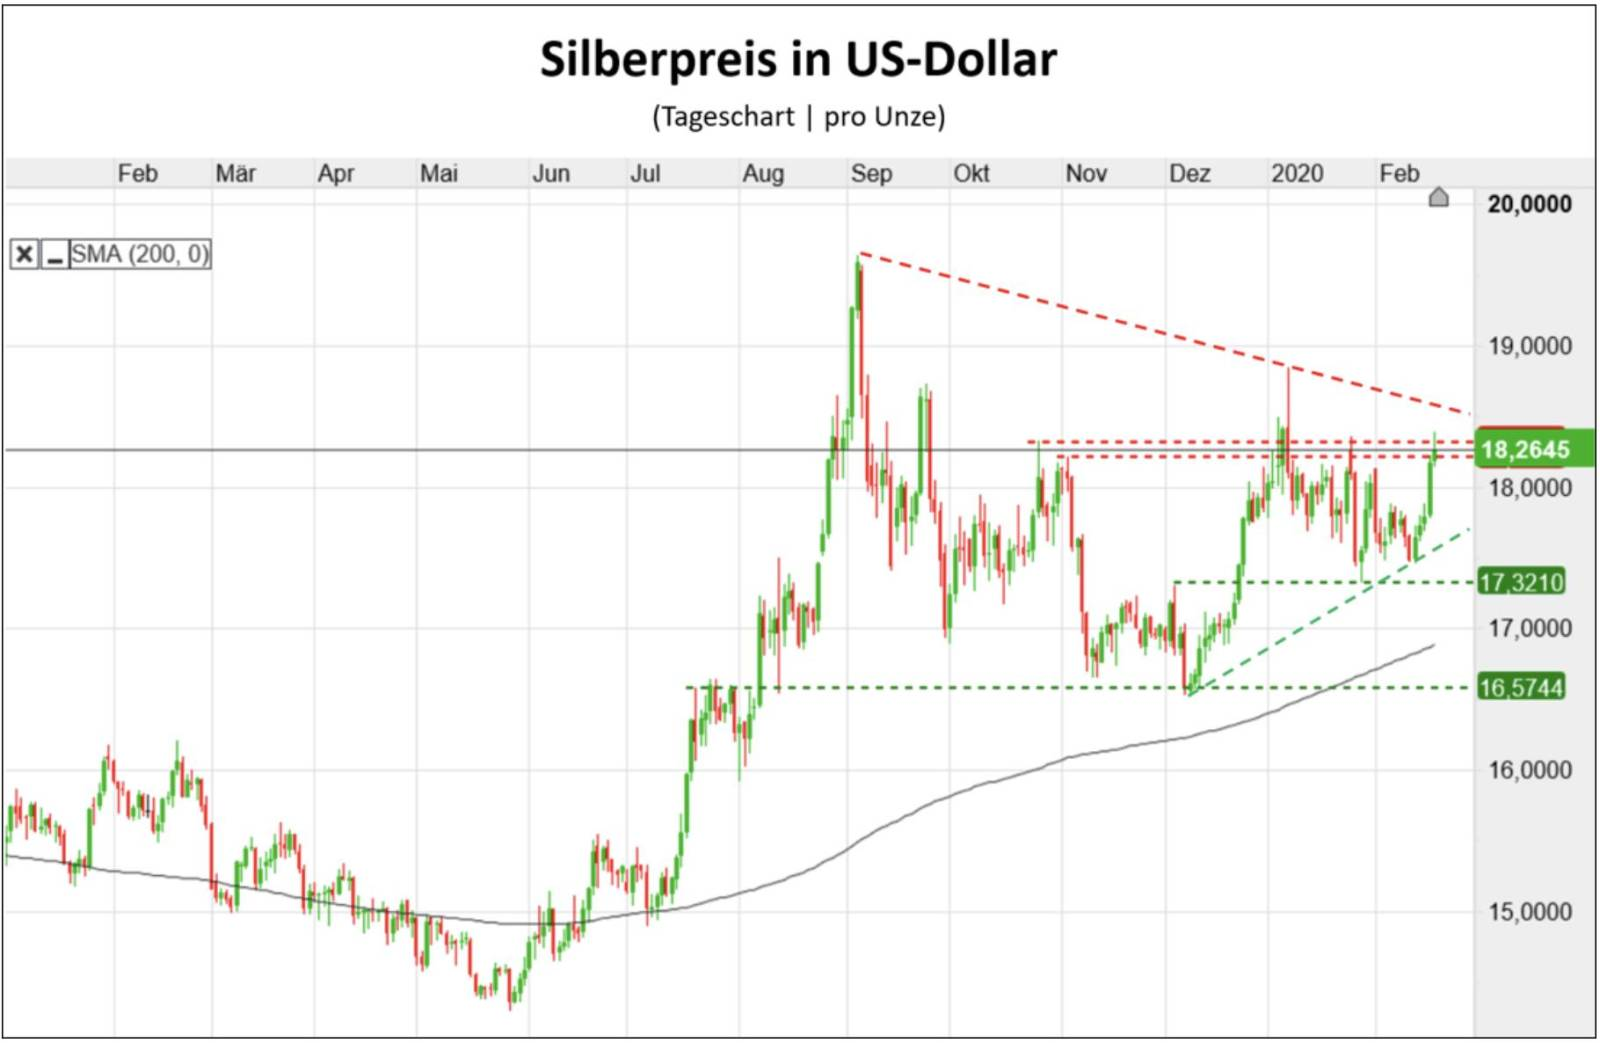 Silberpreis Chart in US-Dollar